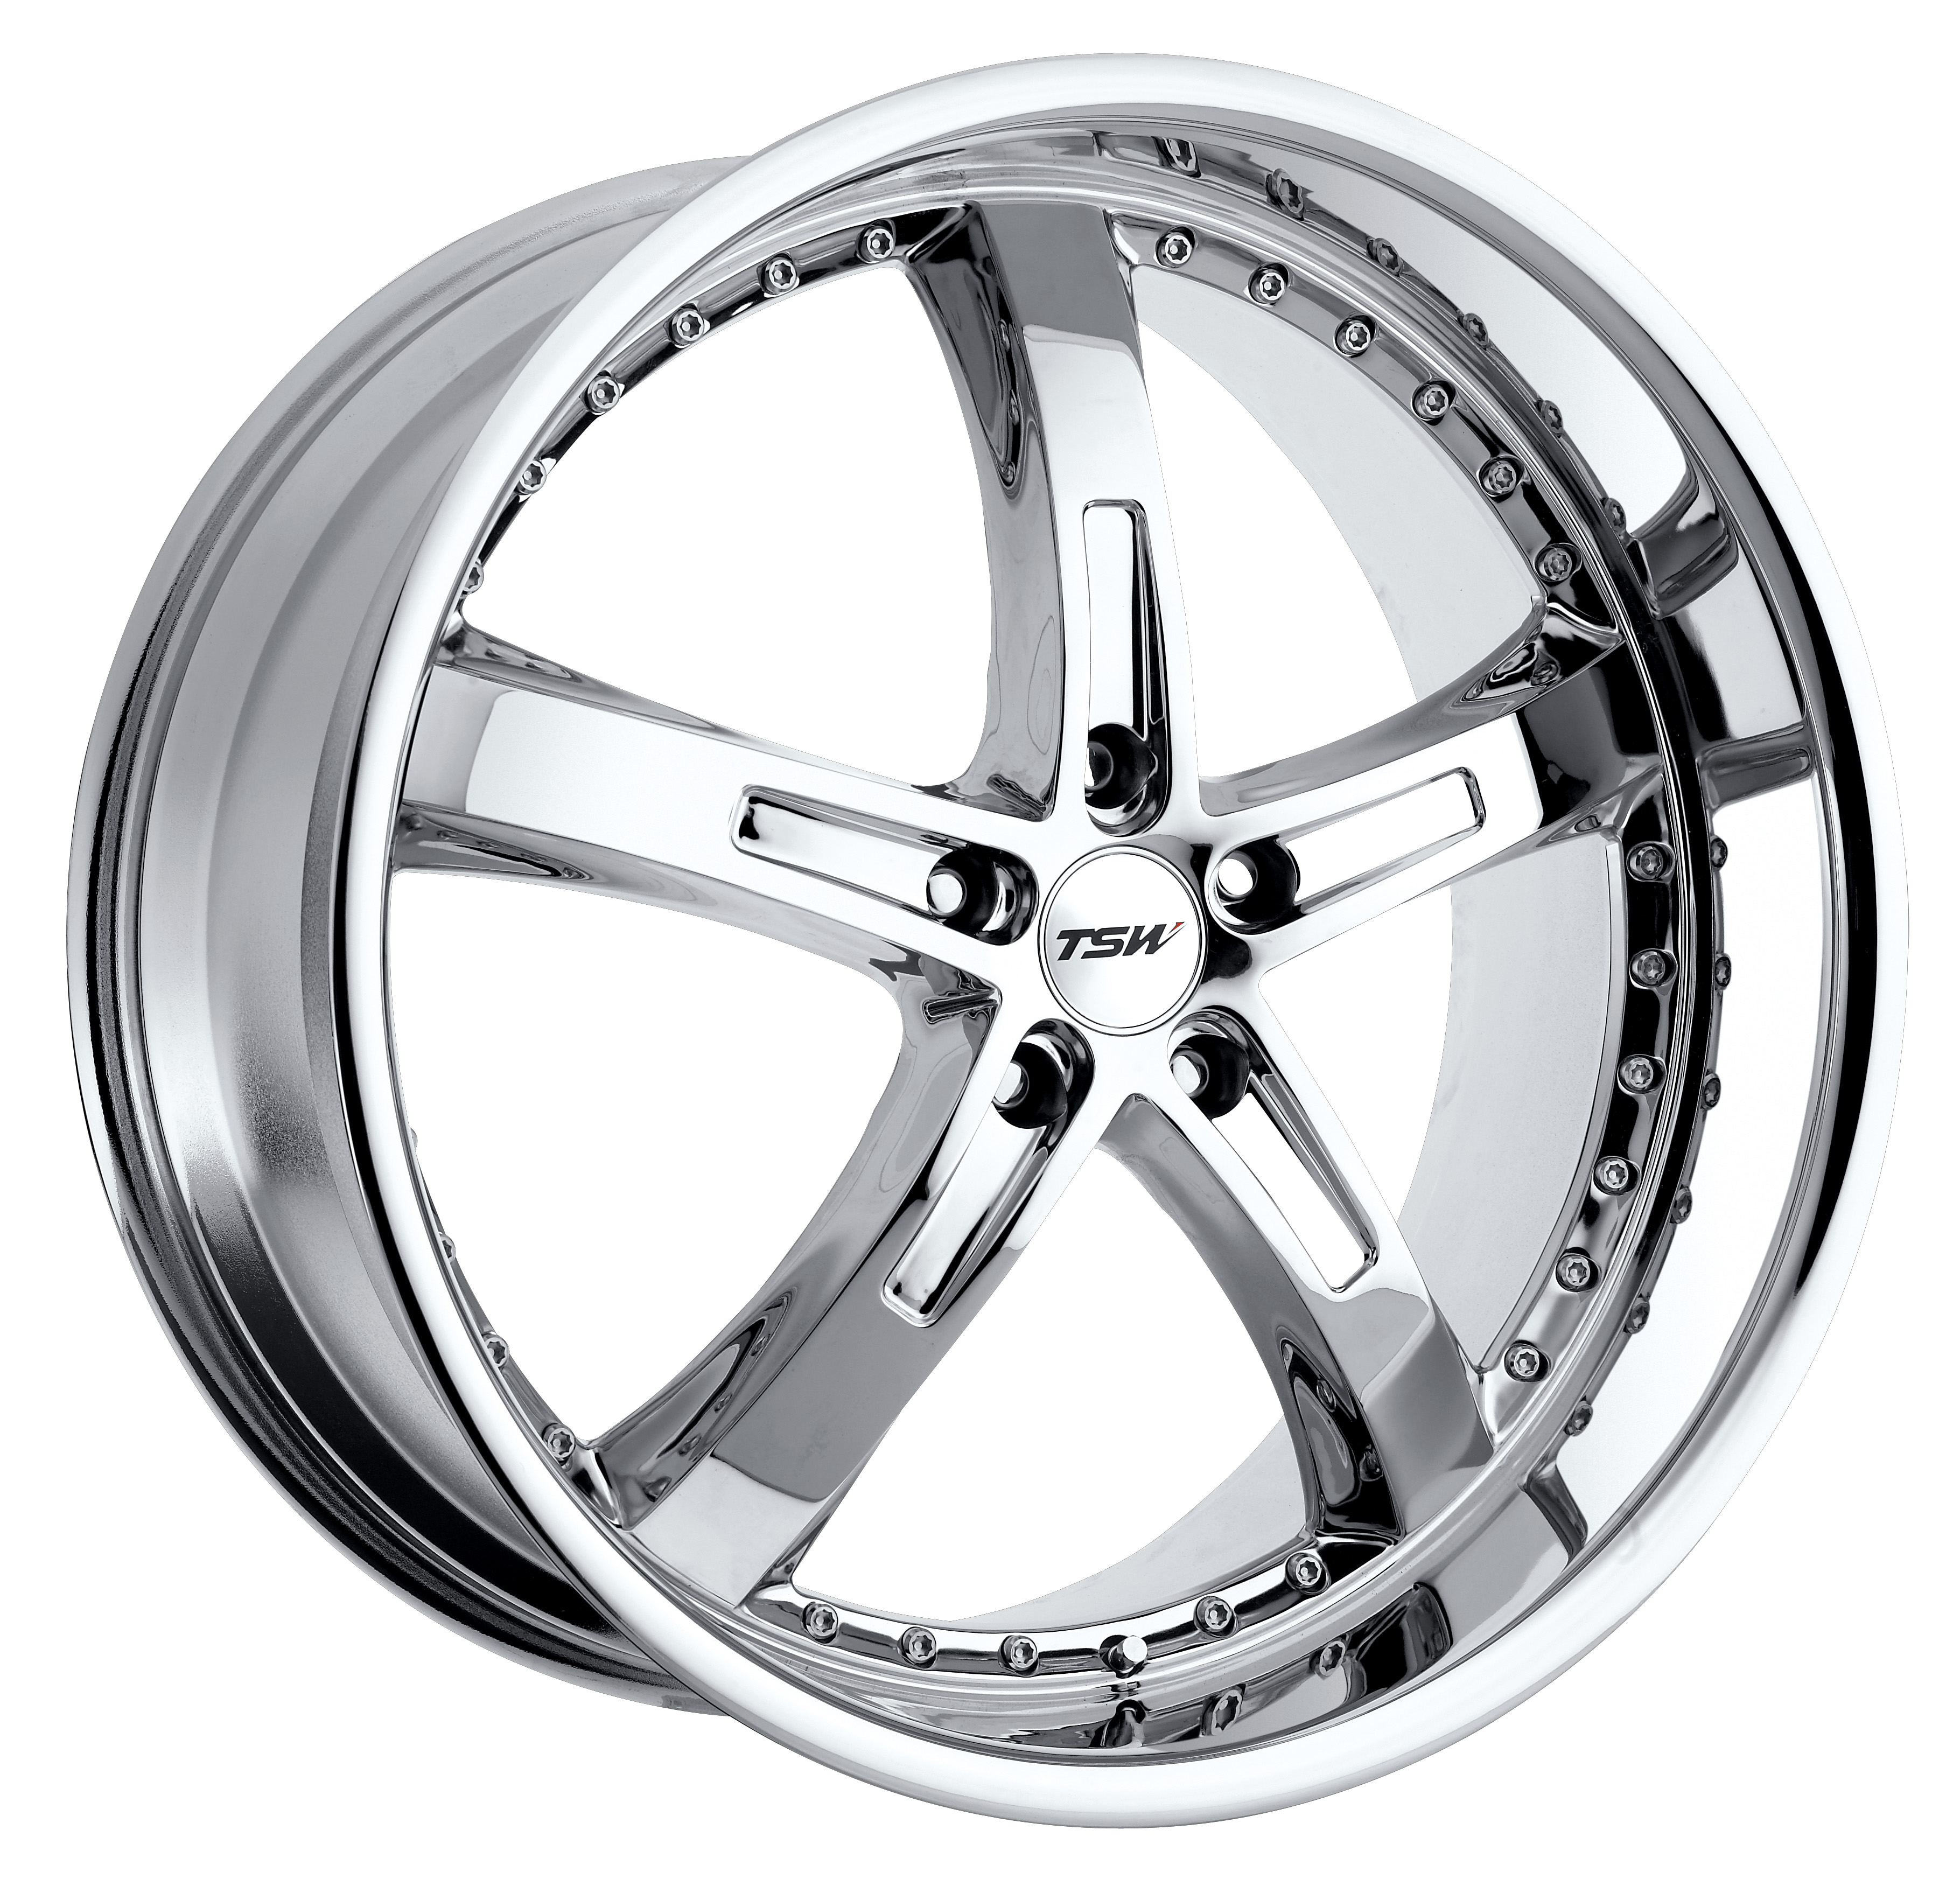 JARAMA  WHEELS AND RIMS PACKAGES